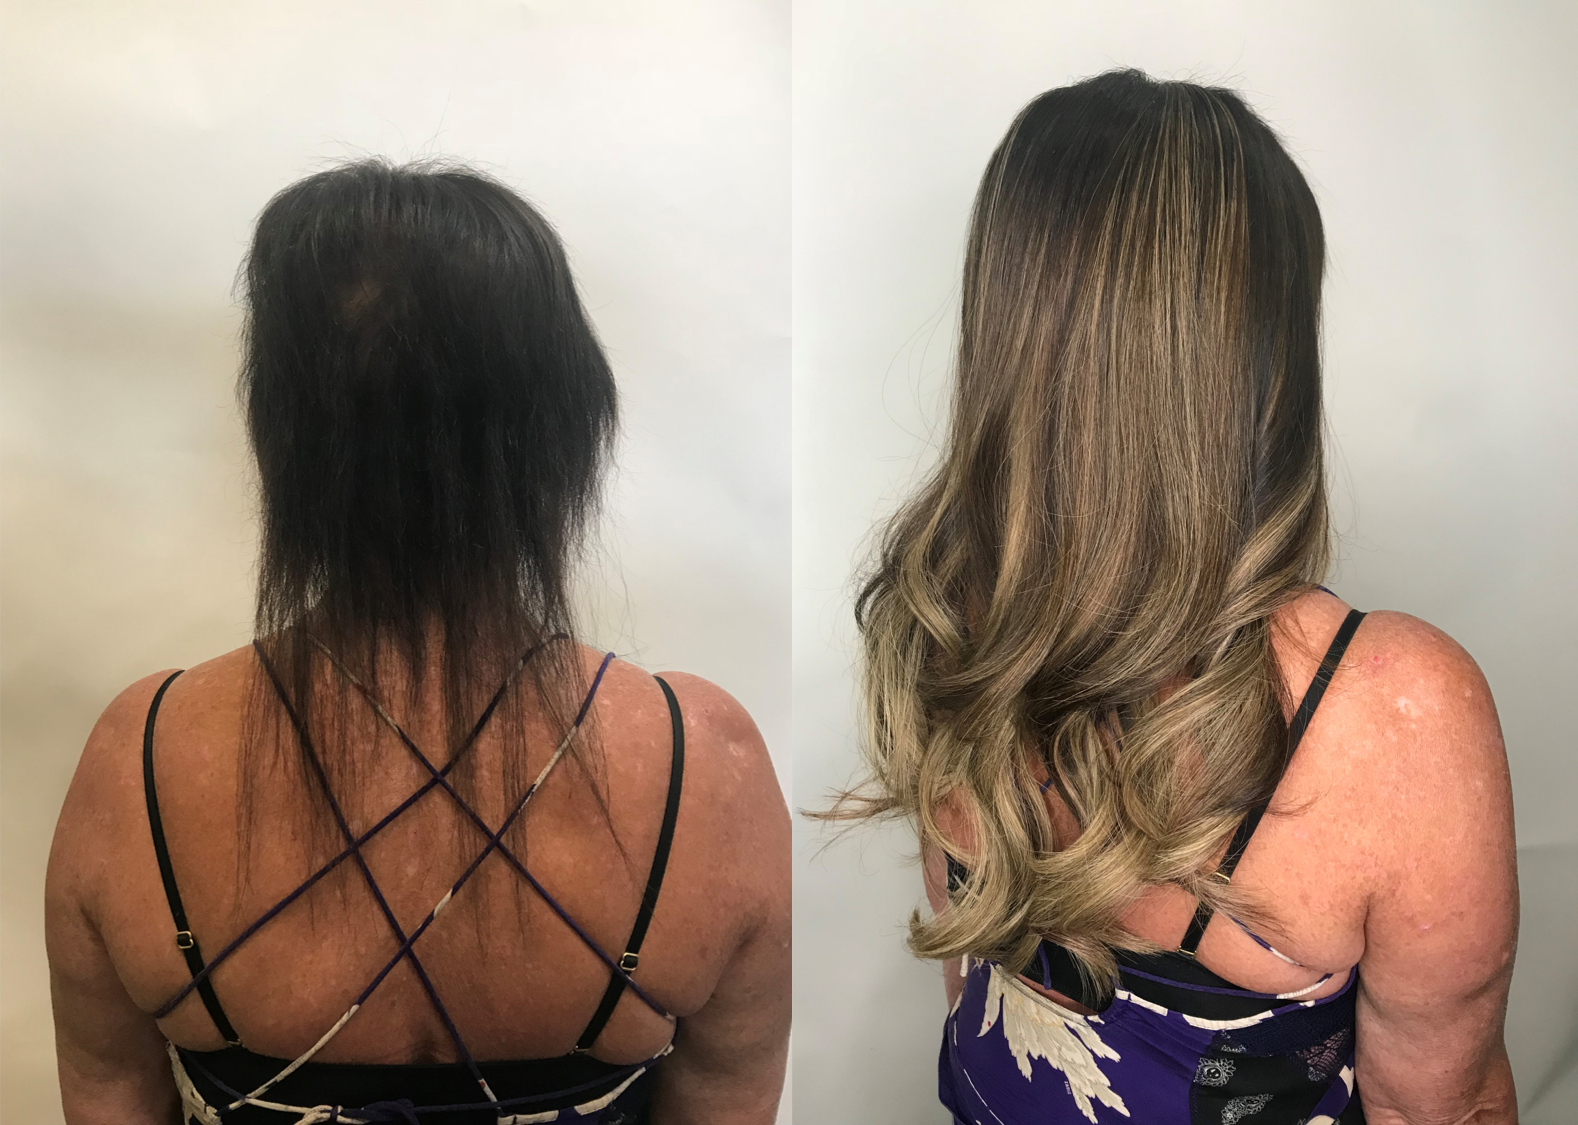 Hair Extensions for Thin and Thinning Hair or Hair Loss